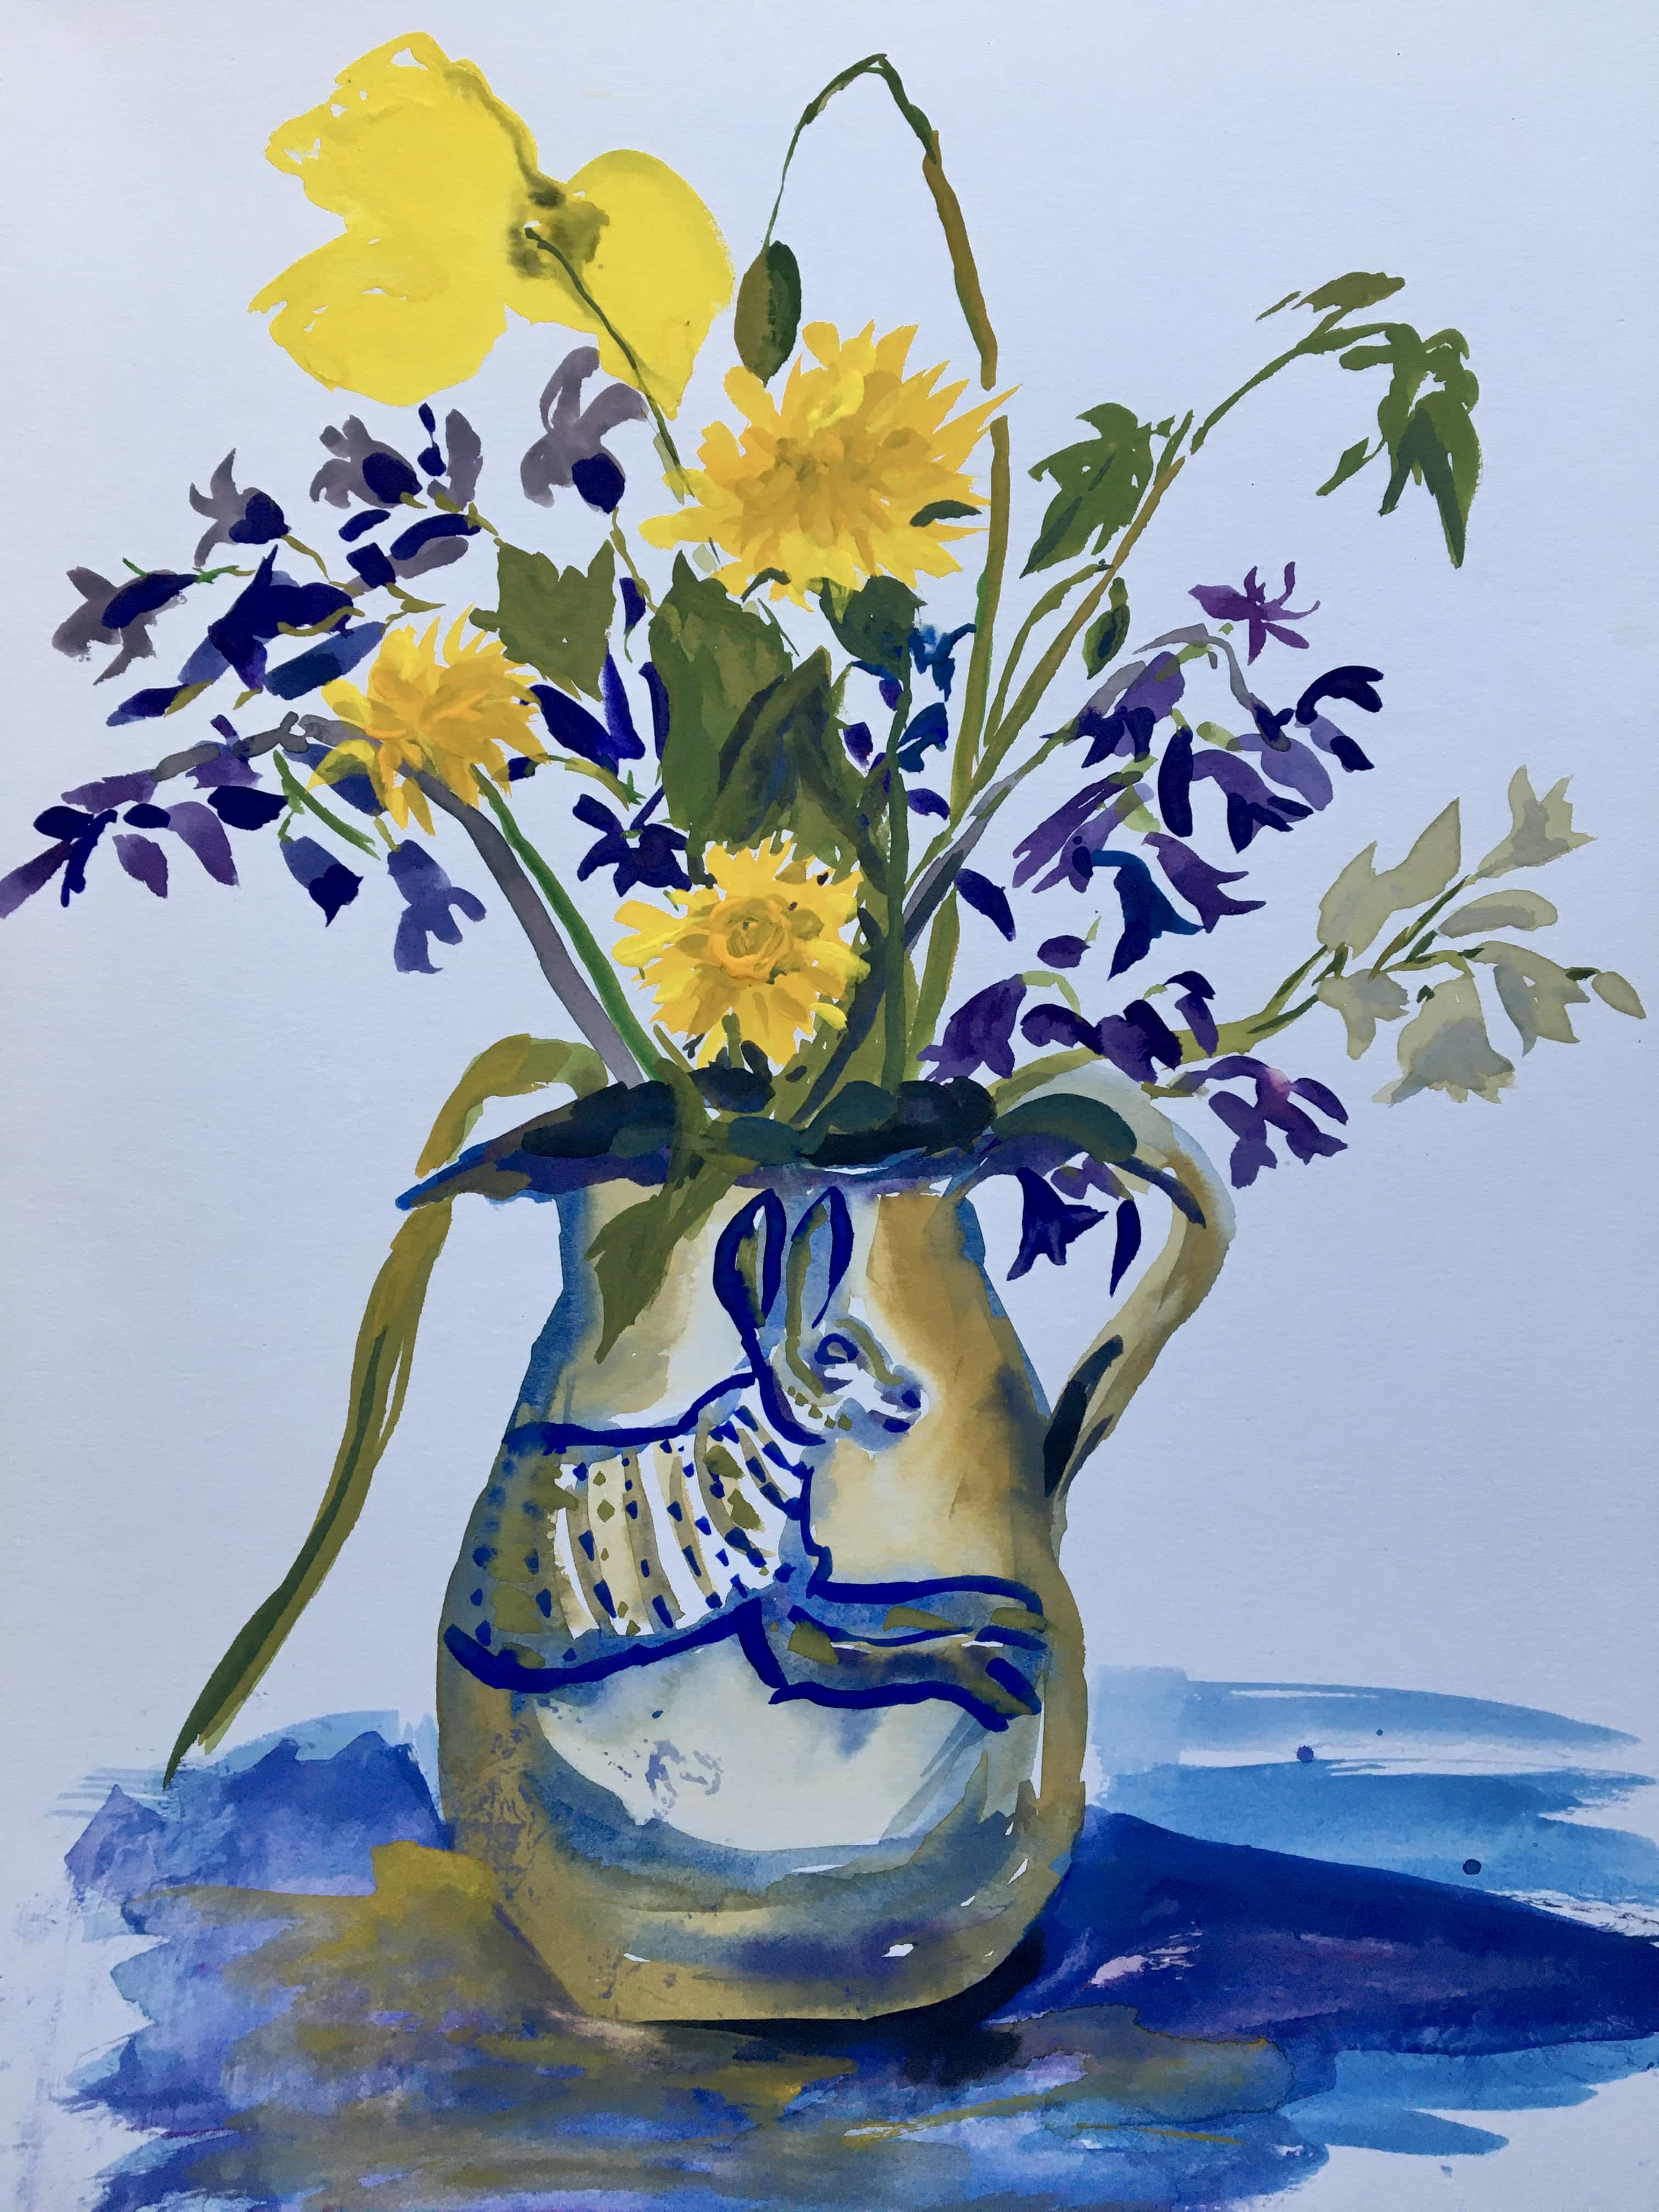 Watercolour gouache painting spring flowers in rabbit jug